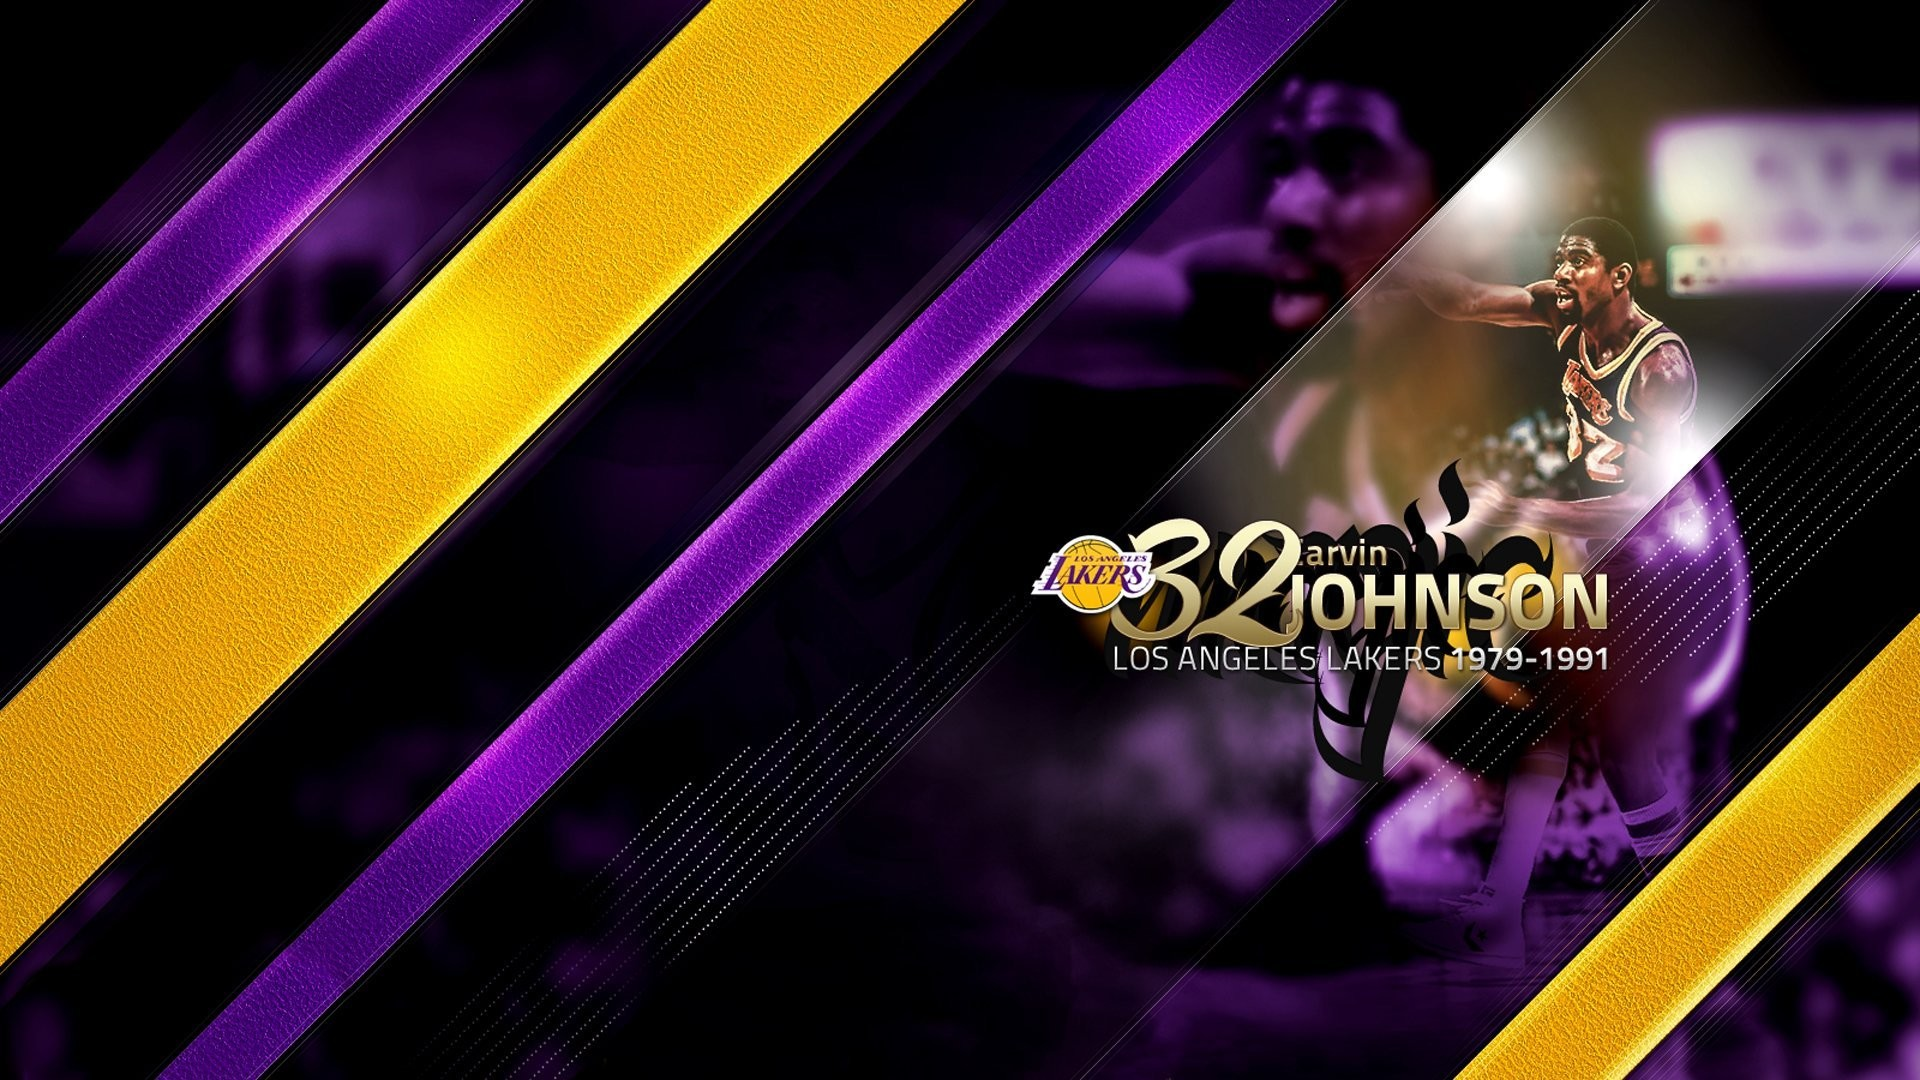 1920x1080 magic johnson los angeles lakers basketball sports nba